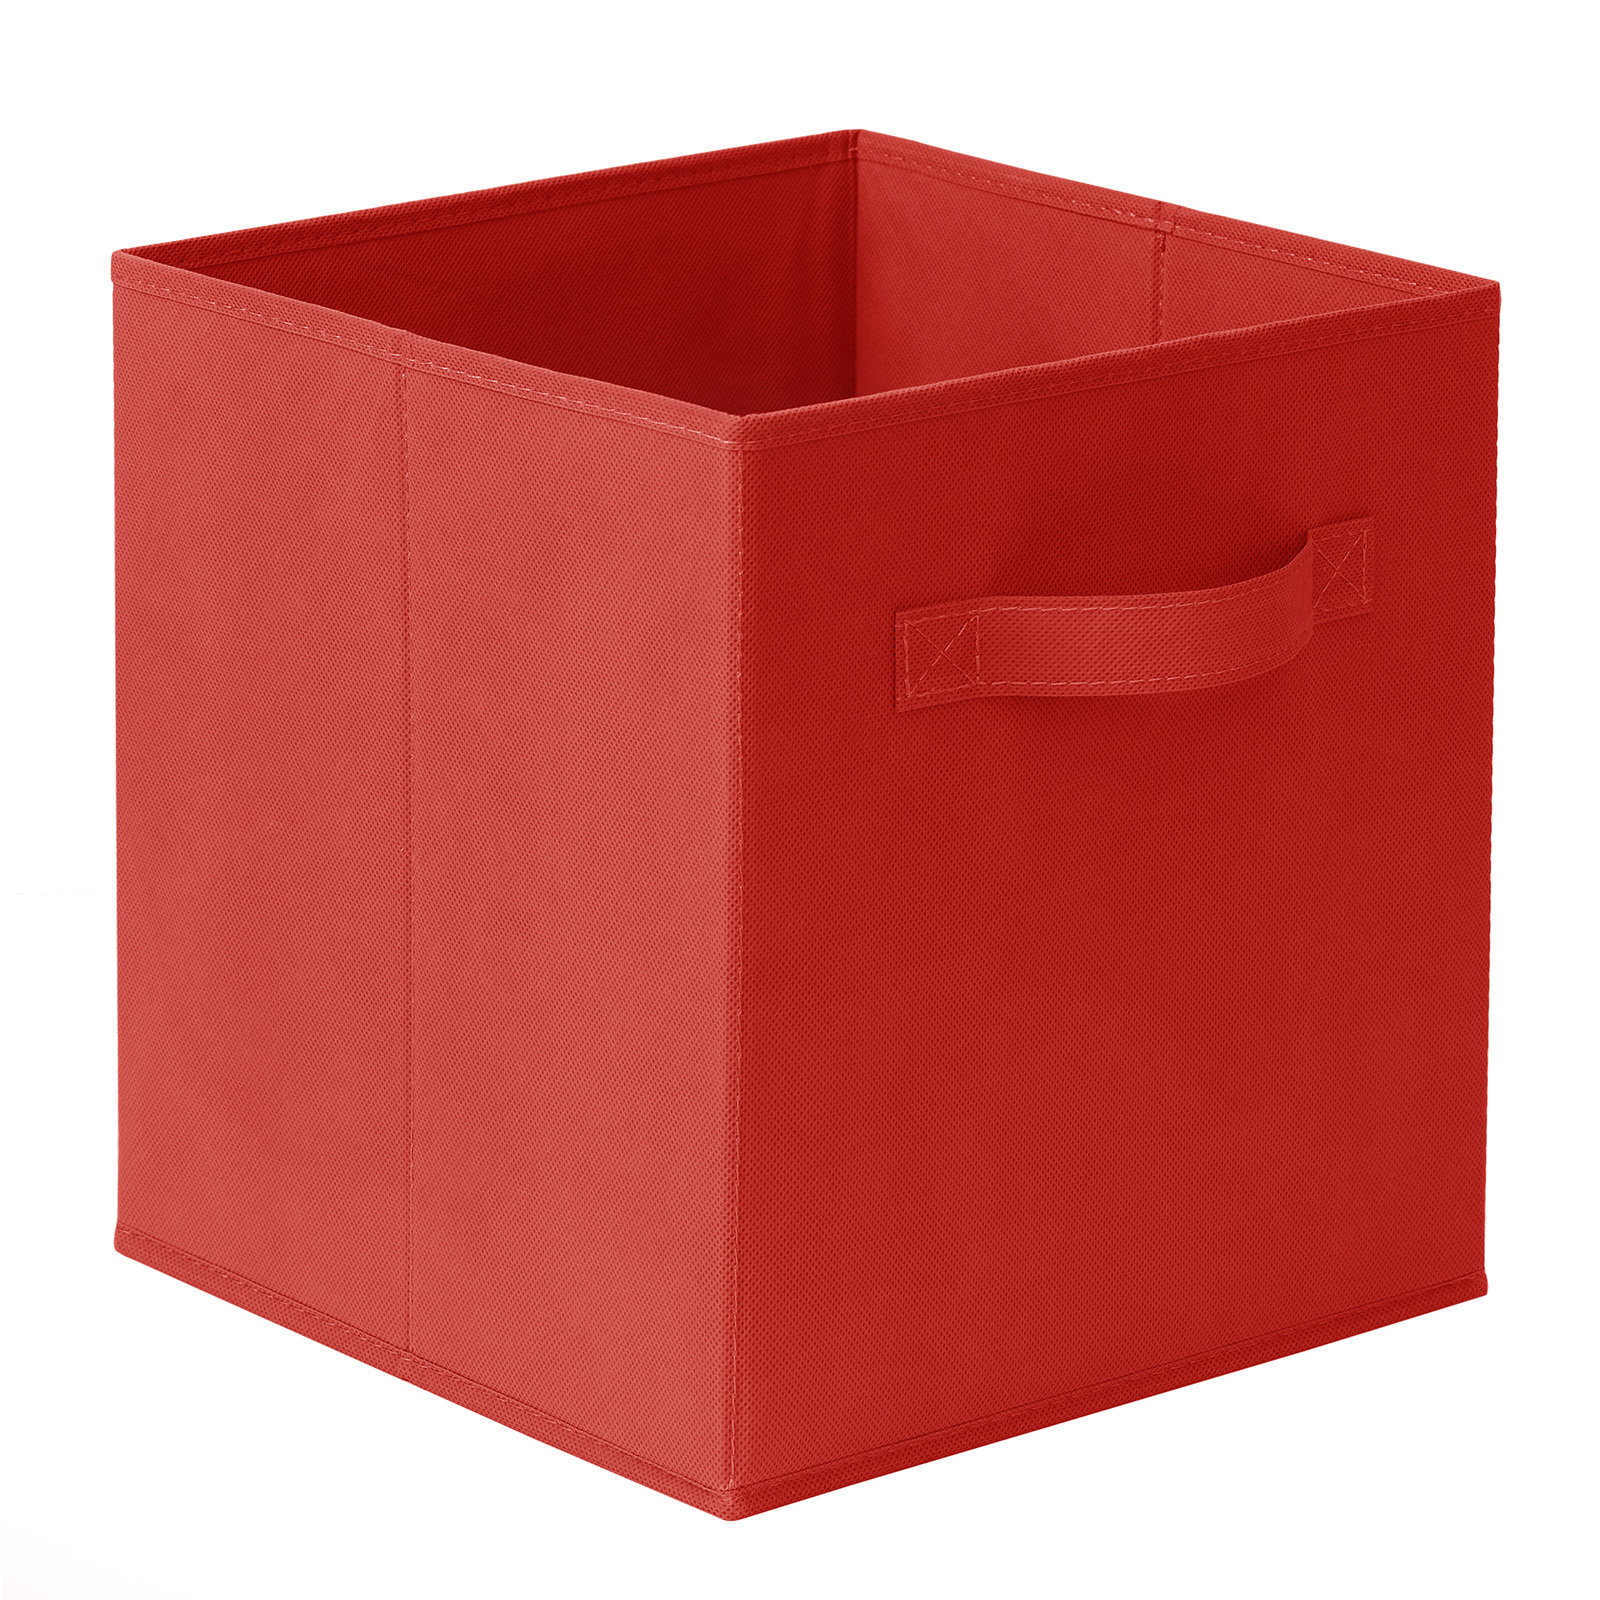 6-Collapsible-Foldable-Cloth-Fabric-Cubby-Cube-Storage-Bins-Baskets-for-Shelves thumbnail 70